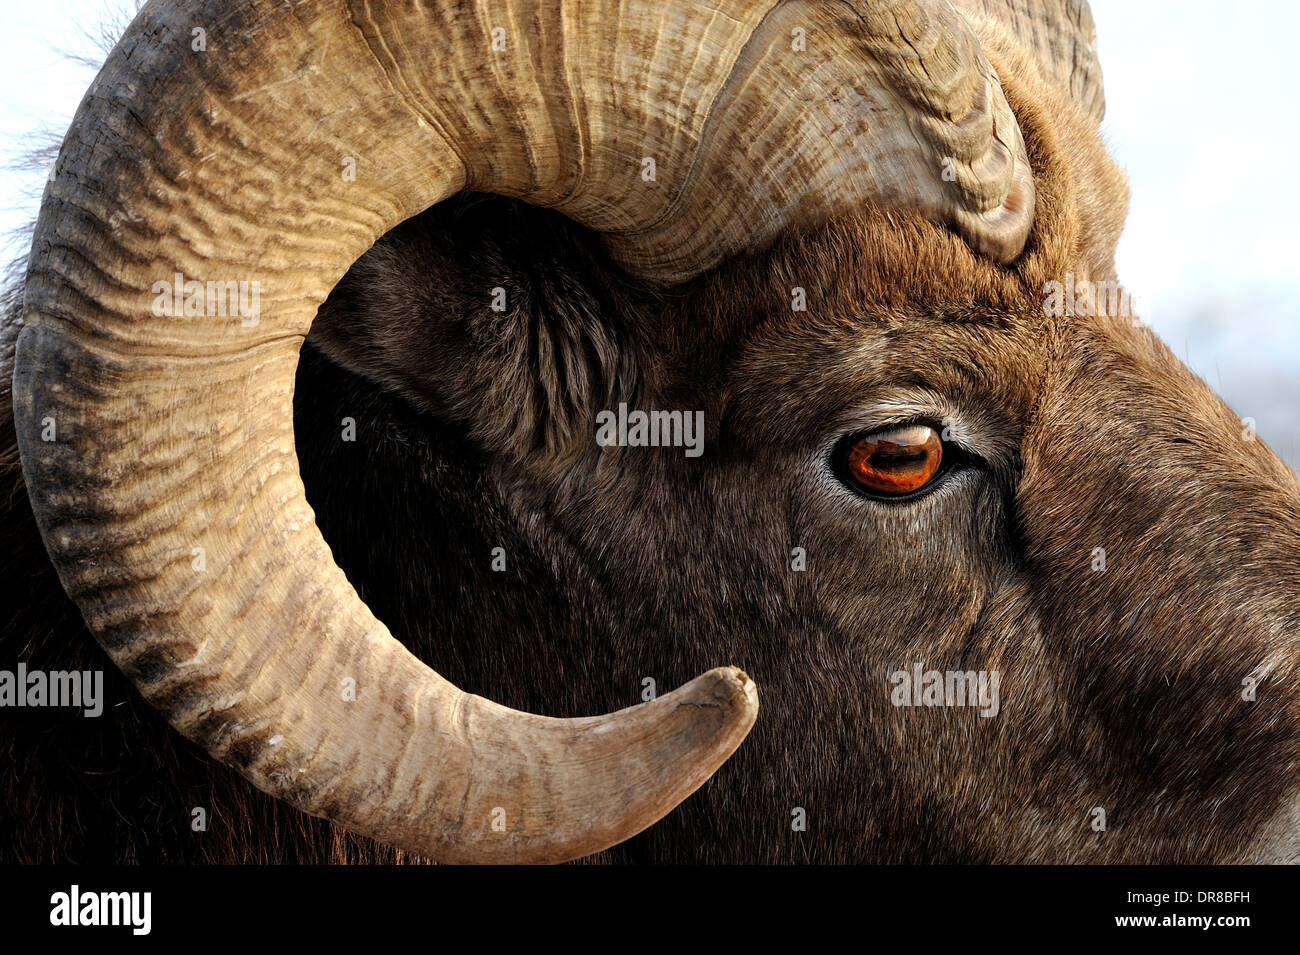 A close up side view of a wild bighorn ram showing detail in the eye and curl of his horns - Stock Image